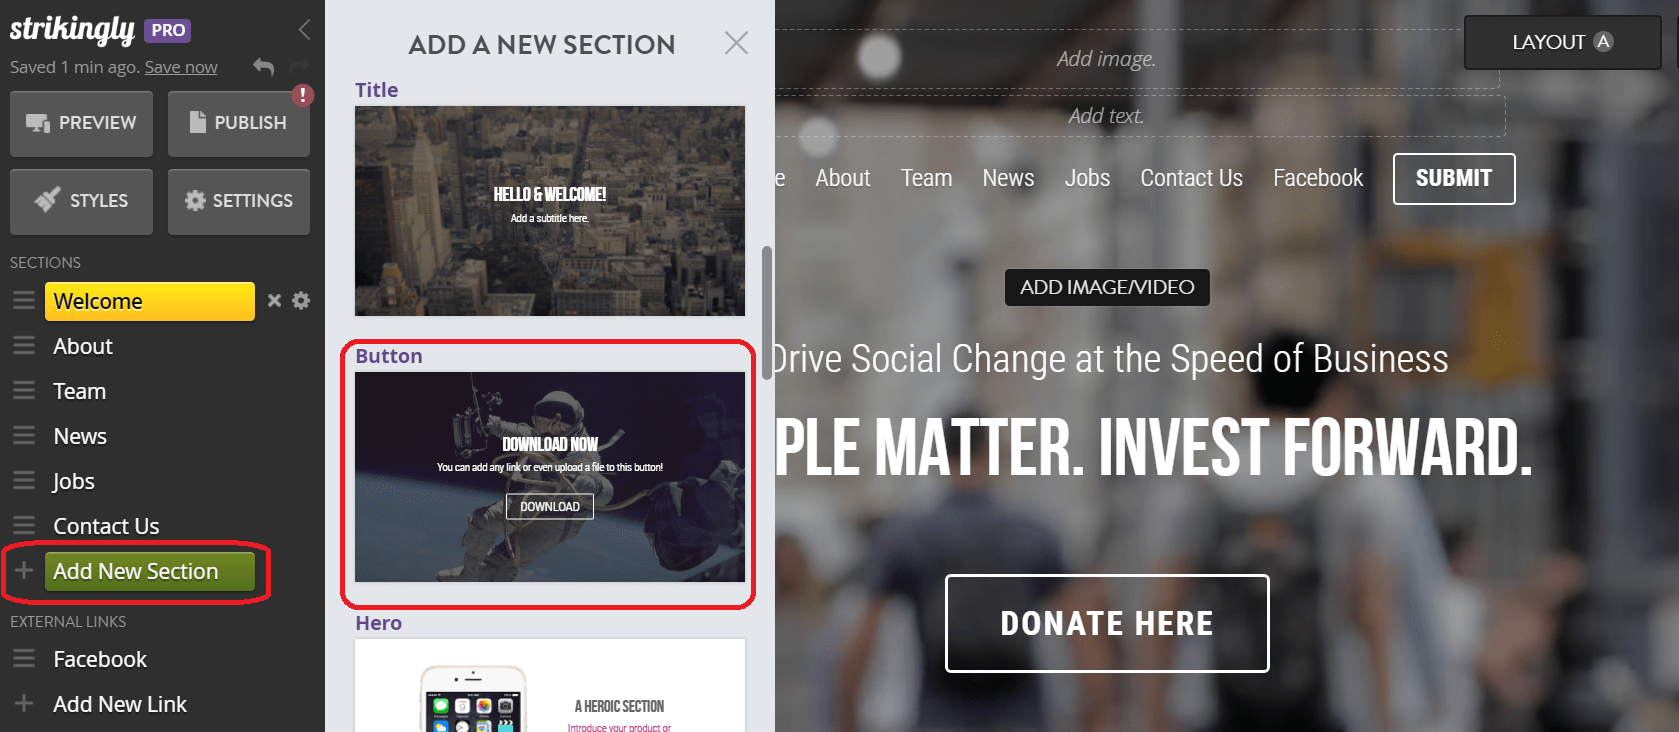 donate button on strikingly